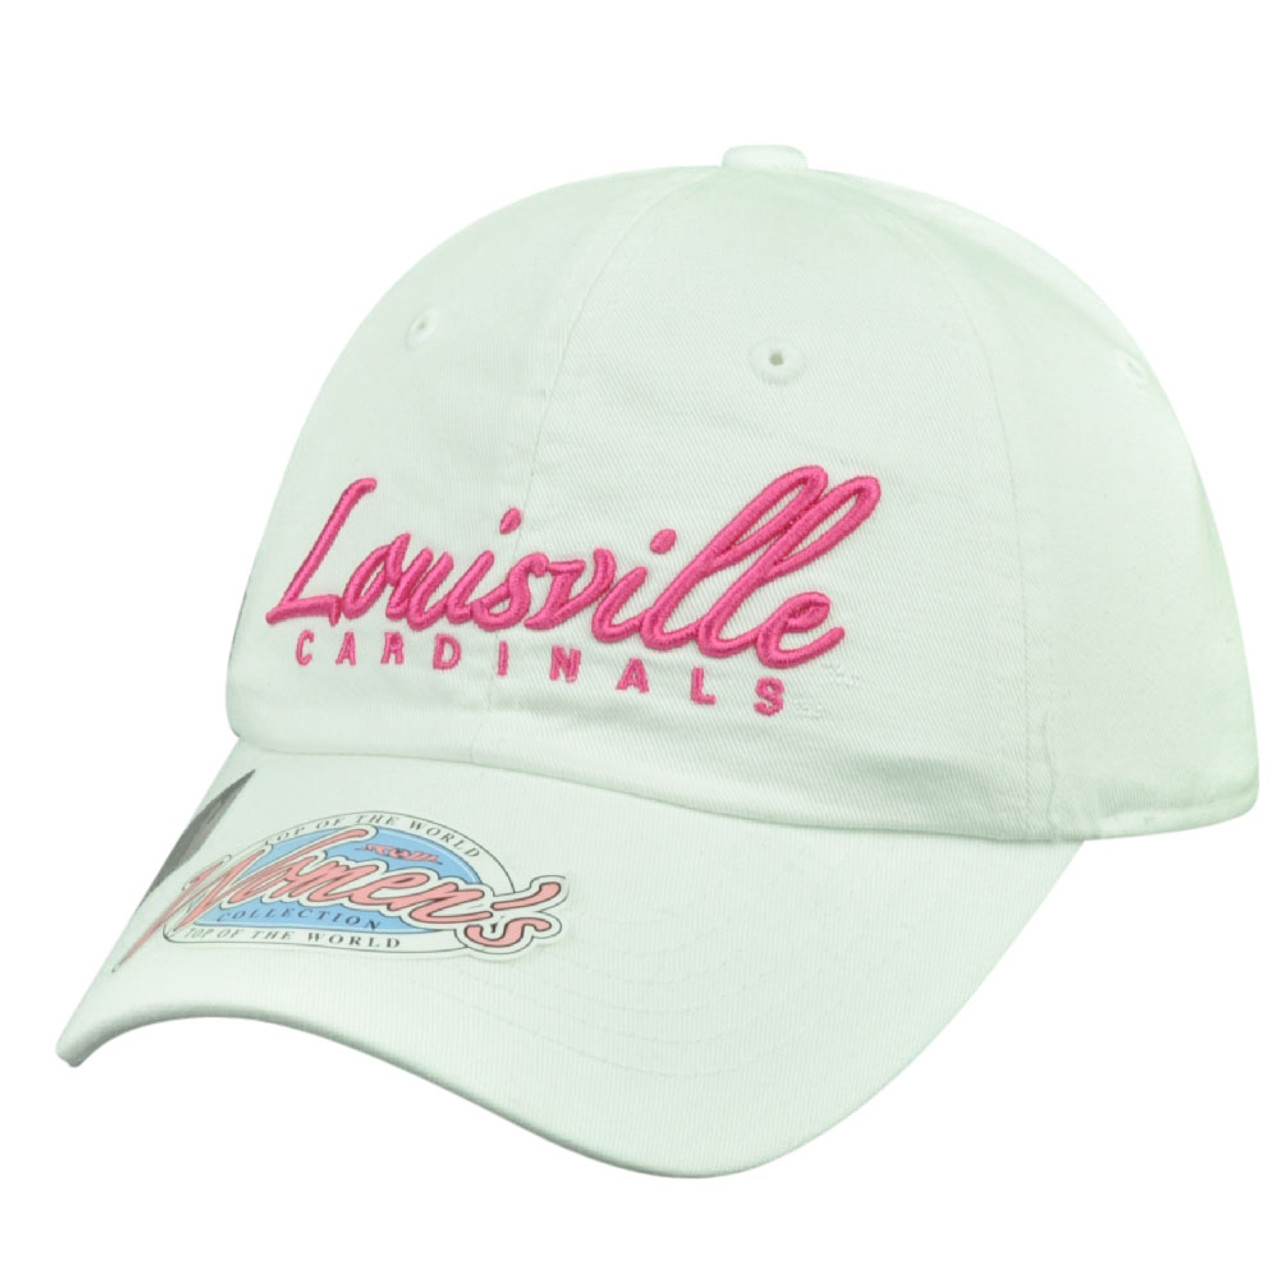 promo code 930c4 fb739 NCAA Top of the World Louisville Cardinals Womens Cut Sun Buckle Hat Cap  White - Cap Store Online.com